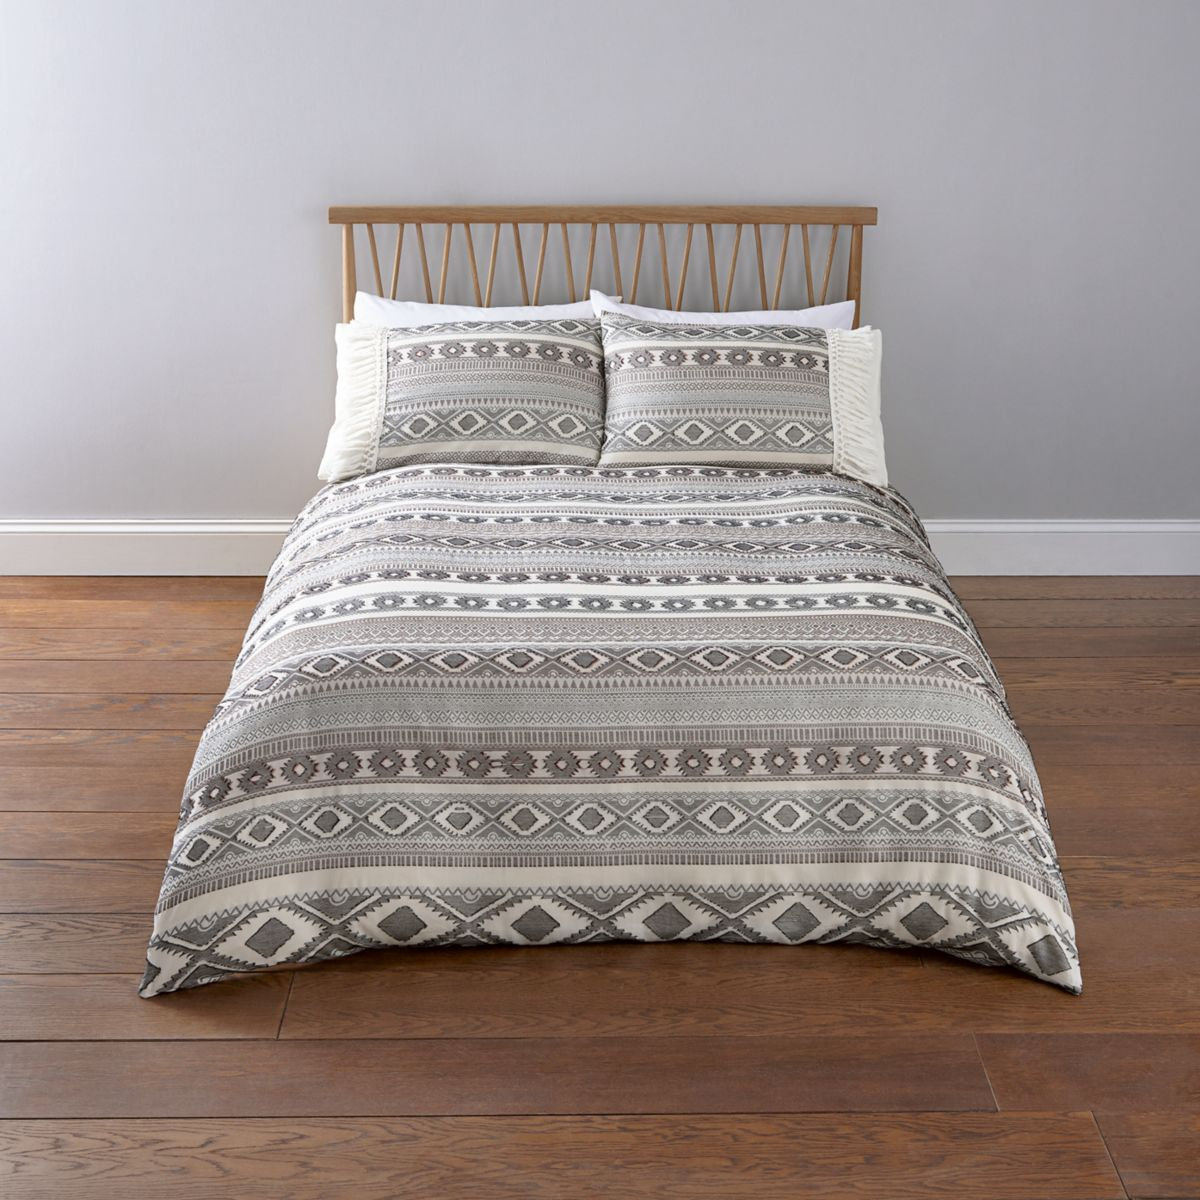 Cream Aztec jacquard super king duvet bed set